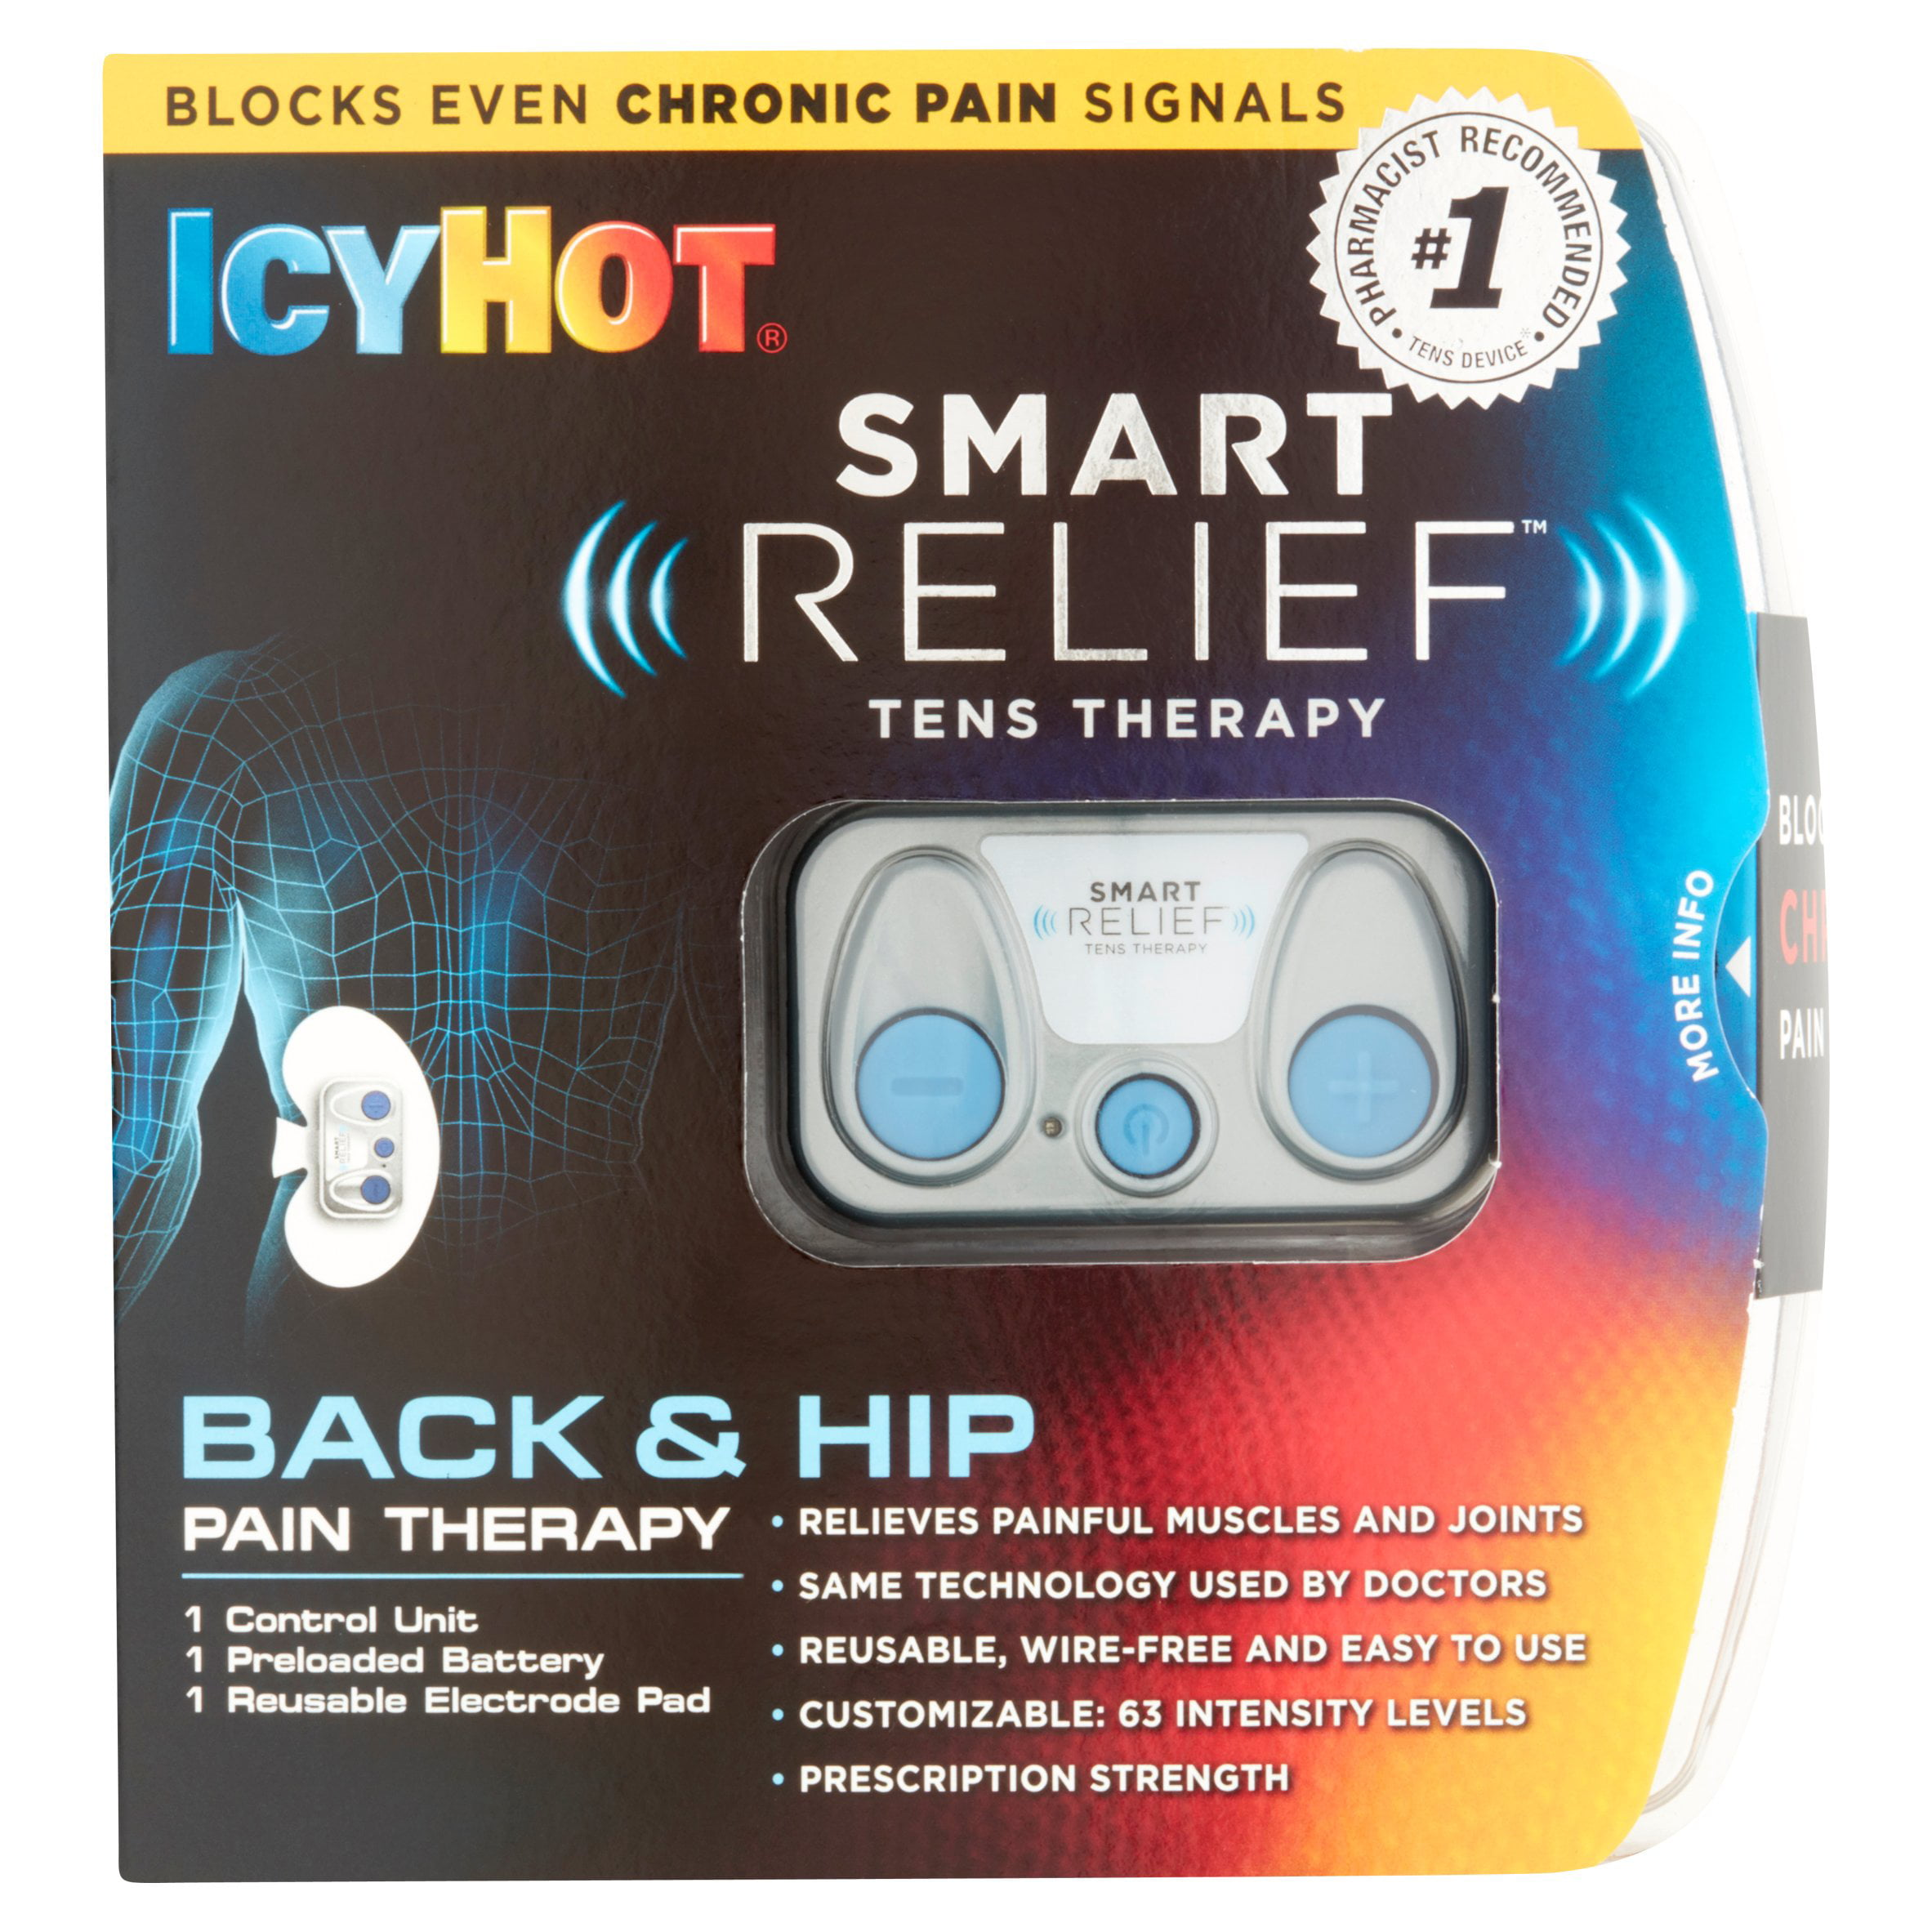 Icy hot smart relief tens therapy for back and hip starter pack icy hot smart relief tens therapy for back and hip starter pack walmart fandeluxe Images